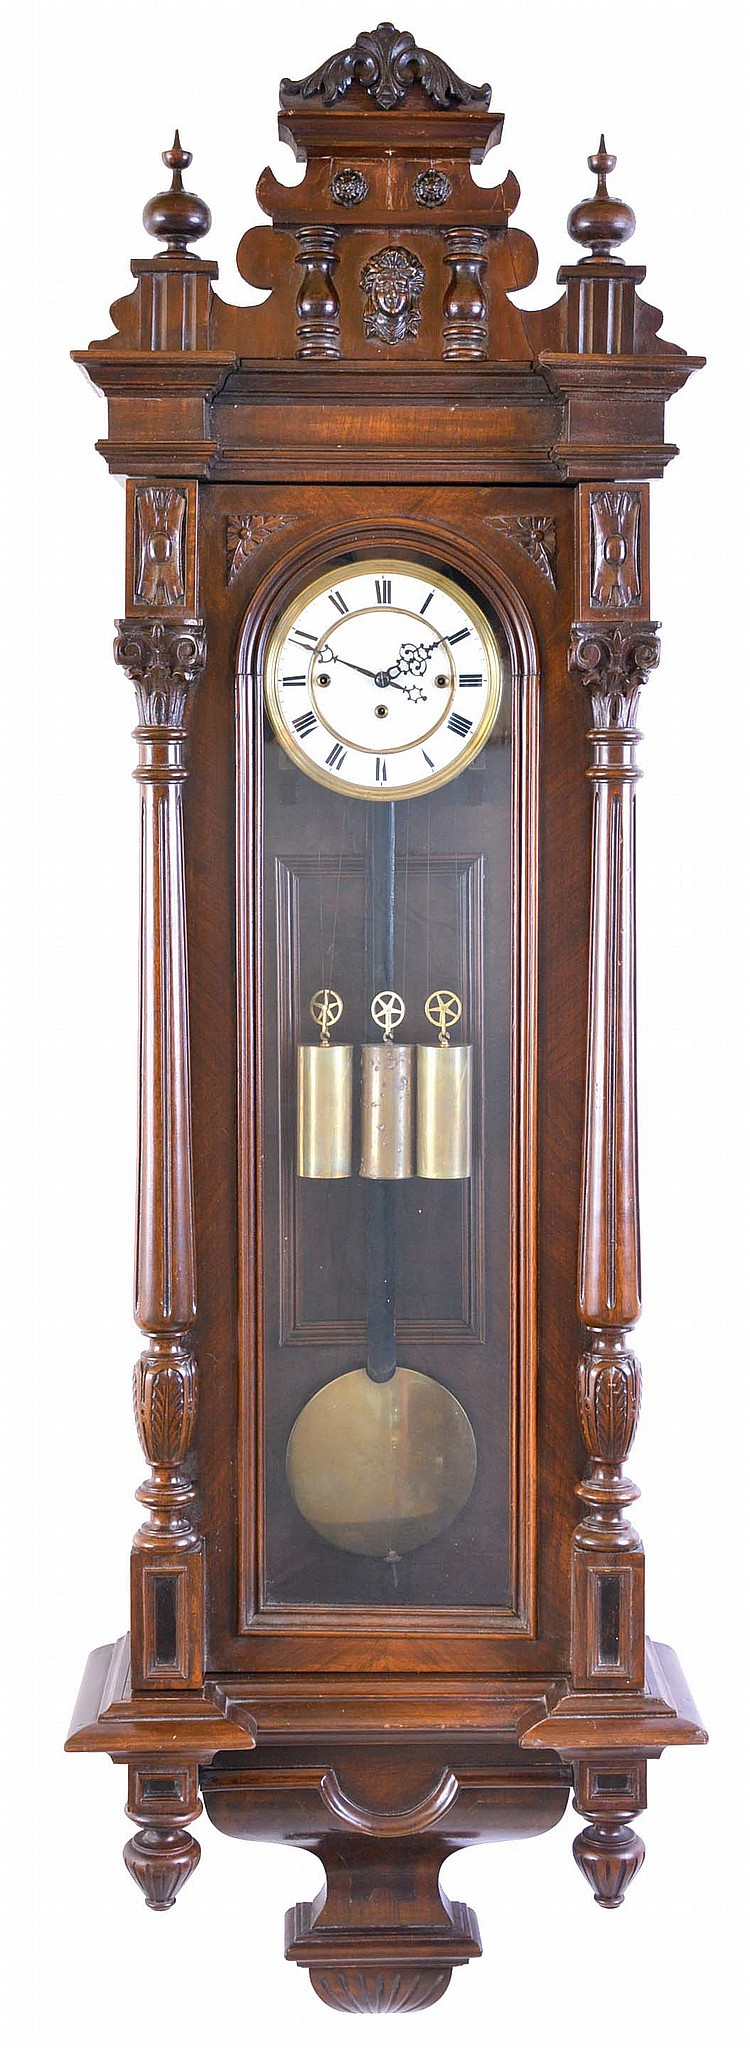 Austria, grand sonnerie striking regulator, beech and walnut case, door with fluted and carved columns, molded top with removable crest, and base with veneered bracket and turned drops, Roman numeral, two piece white enamel dial, blued steel hands, 8